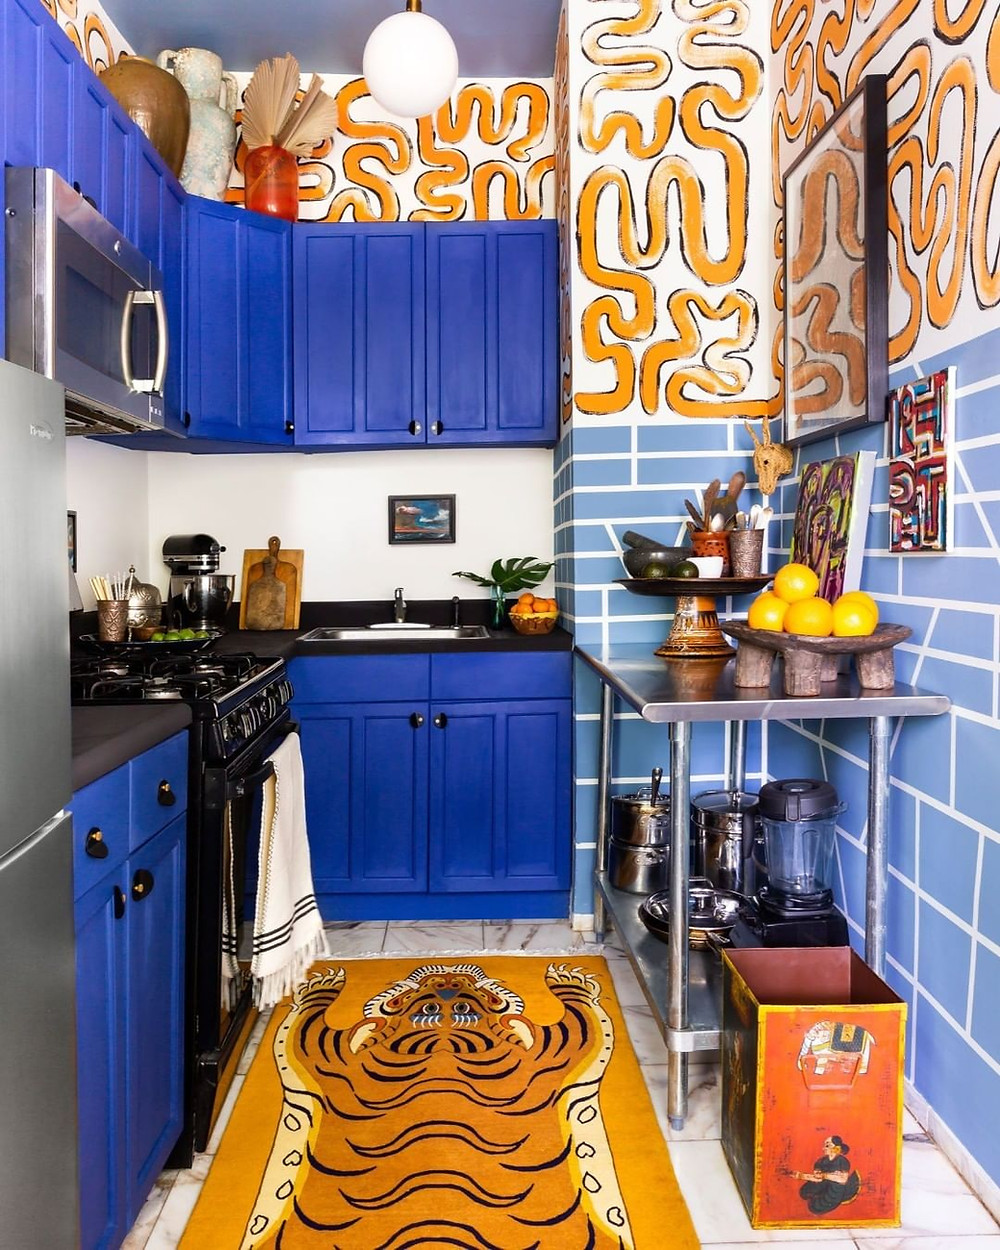 bold and colorful kitchen design with blue cabinets, tiger rug and orange pattern wallpaper